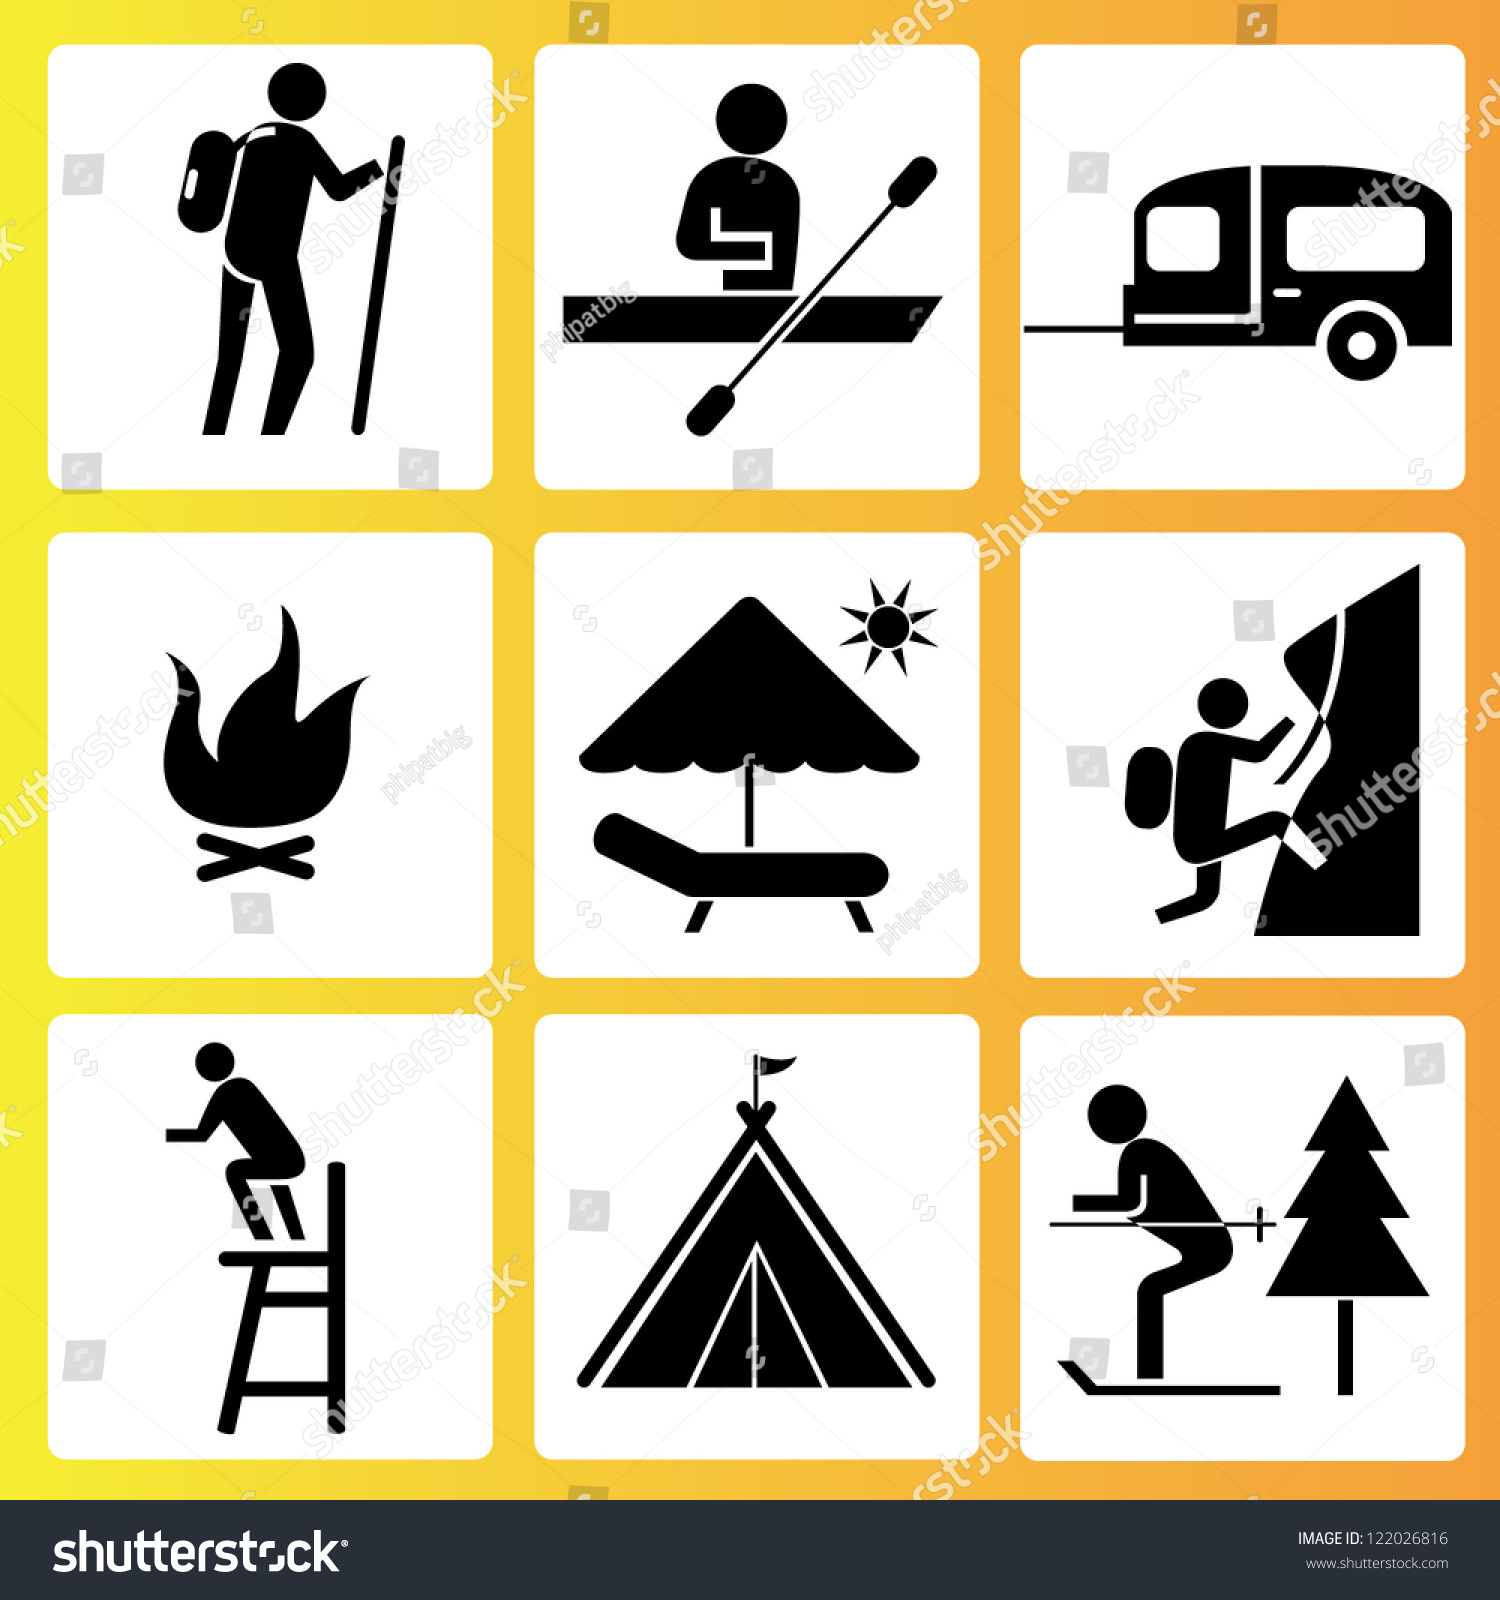 holiday summer activities icon set vector stock vector 122026816 shutterstock. Black Bedroom Furniture Sets. Home Design Ideas